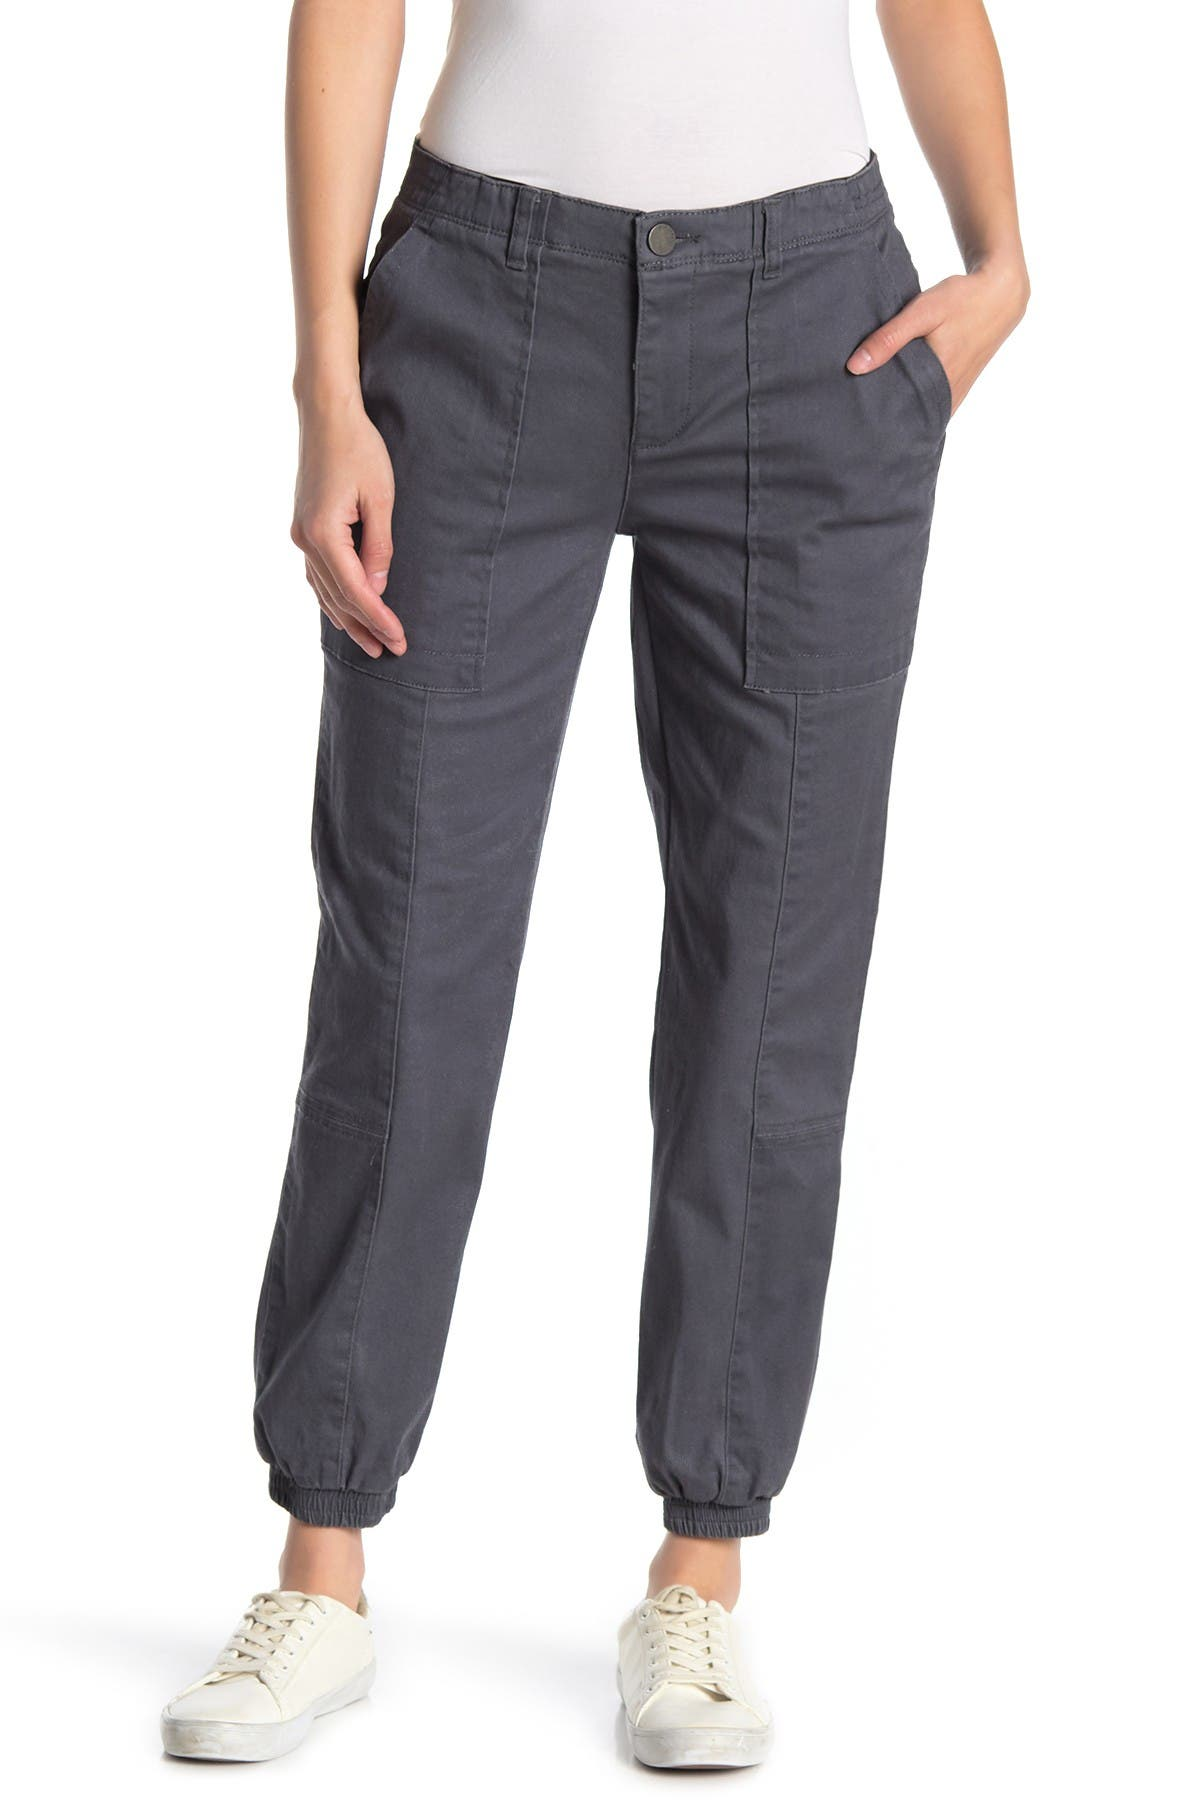 Image of Democracy Absolution High Rise Joggers